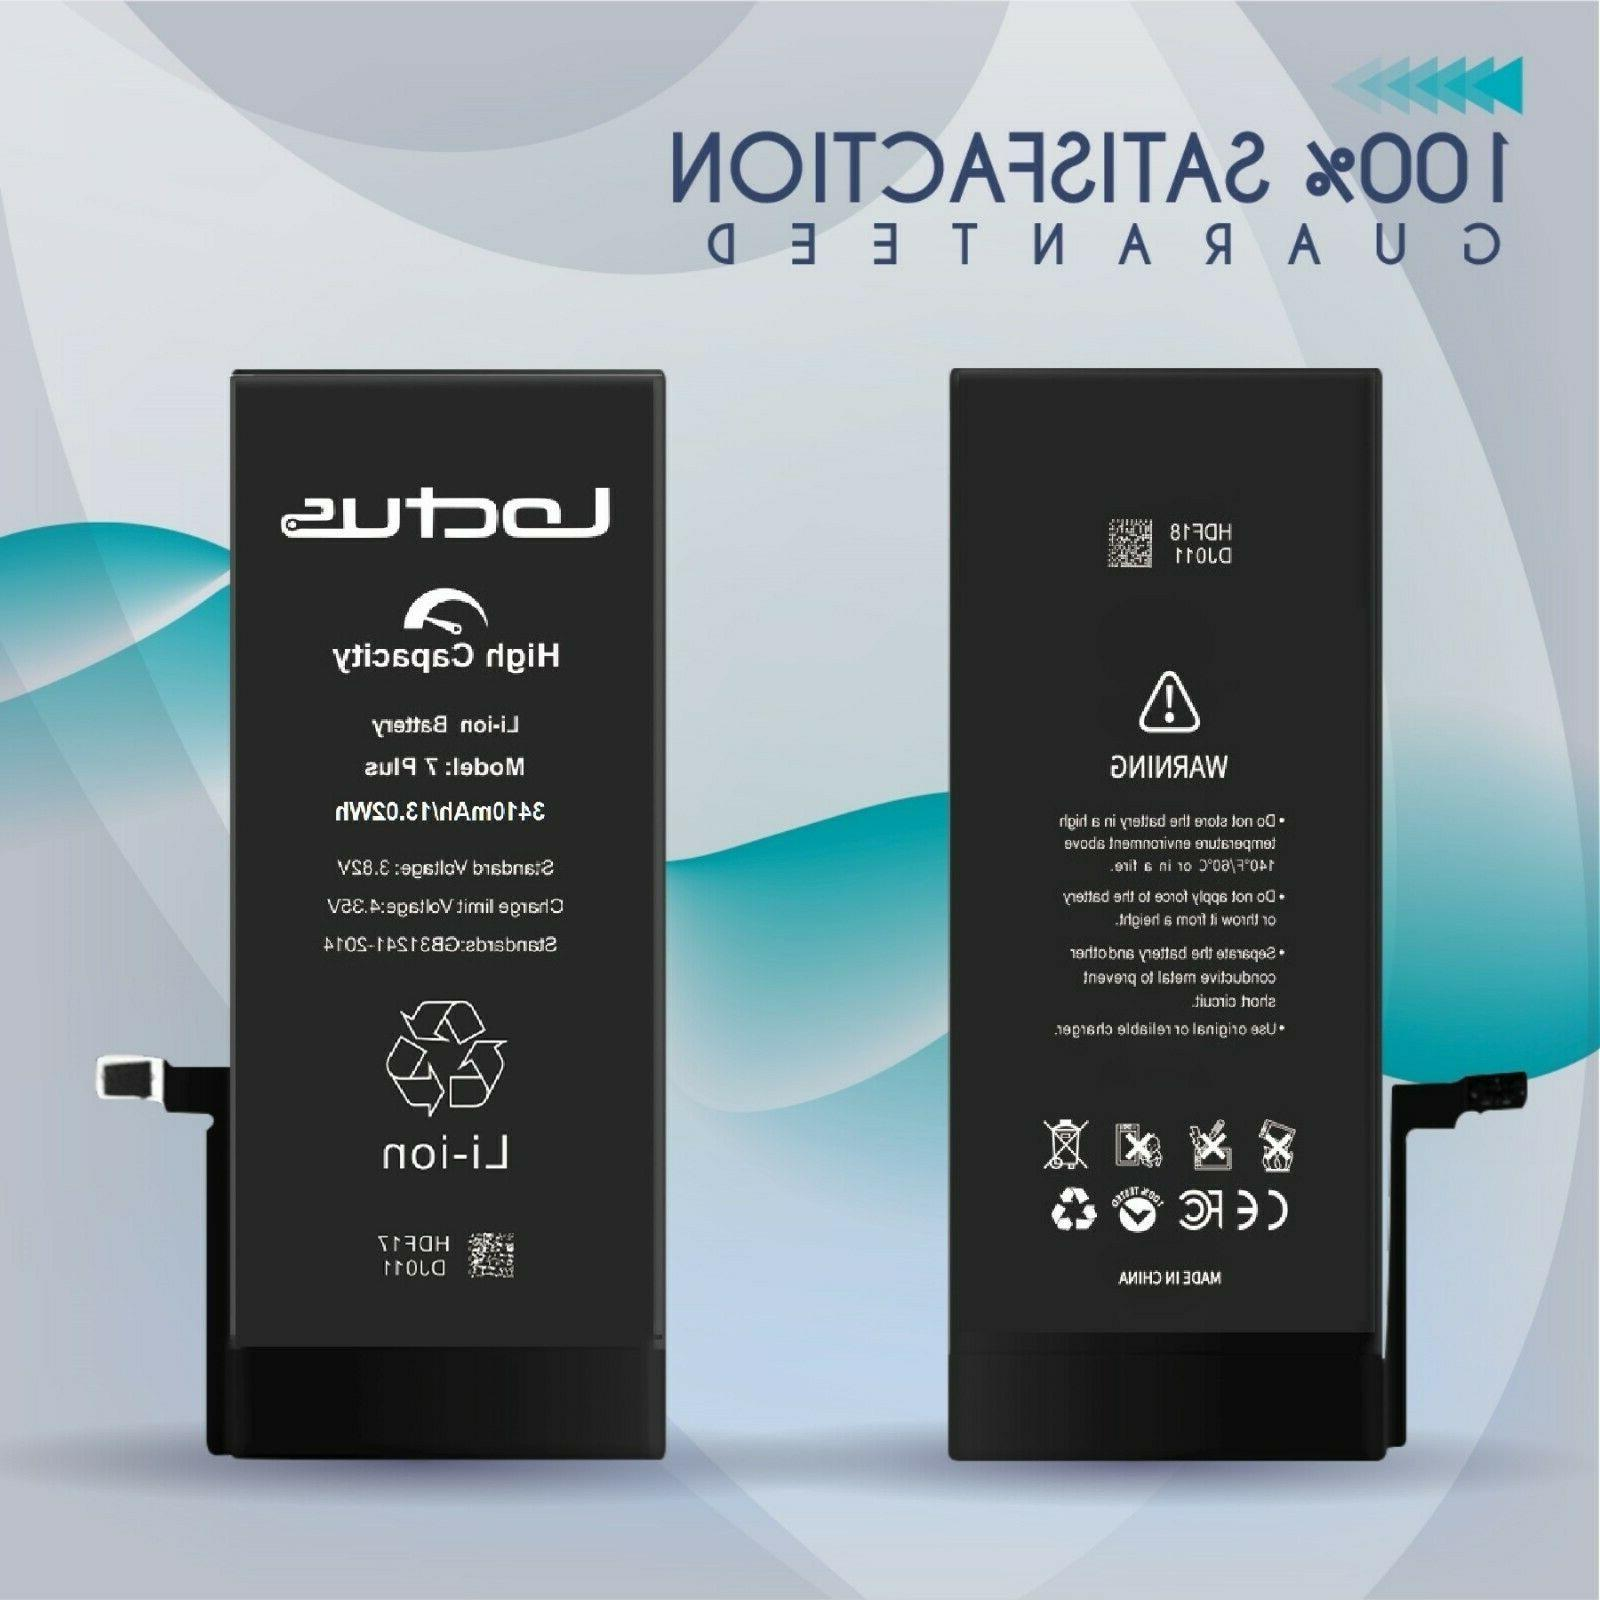 3410mAh for iPhone Complete Guarantee